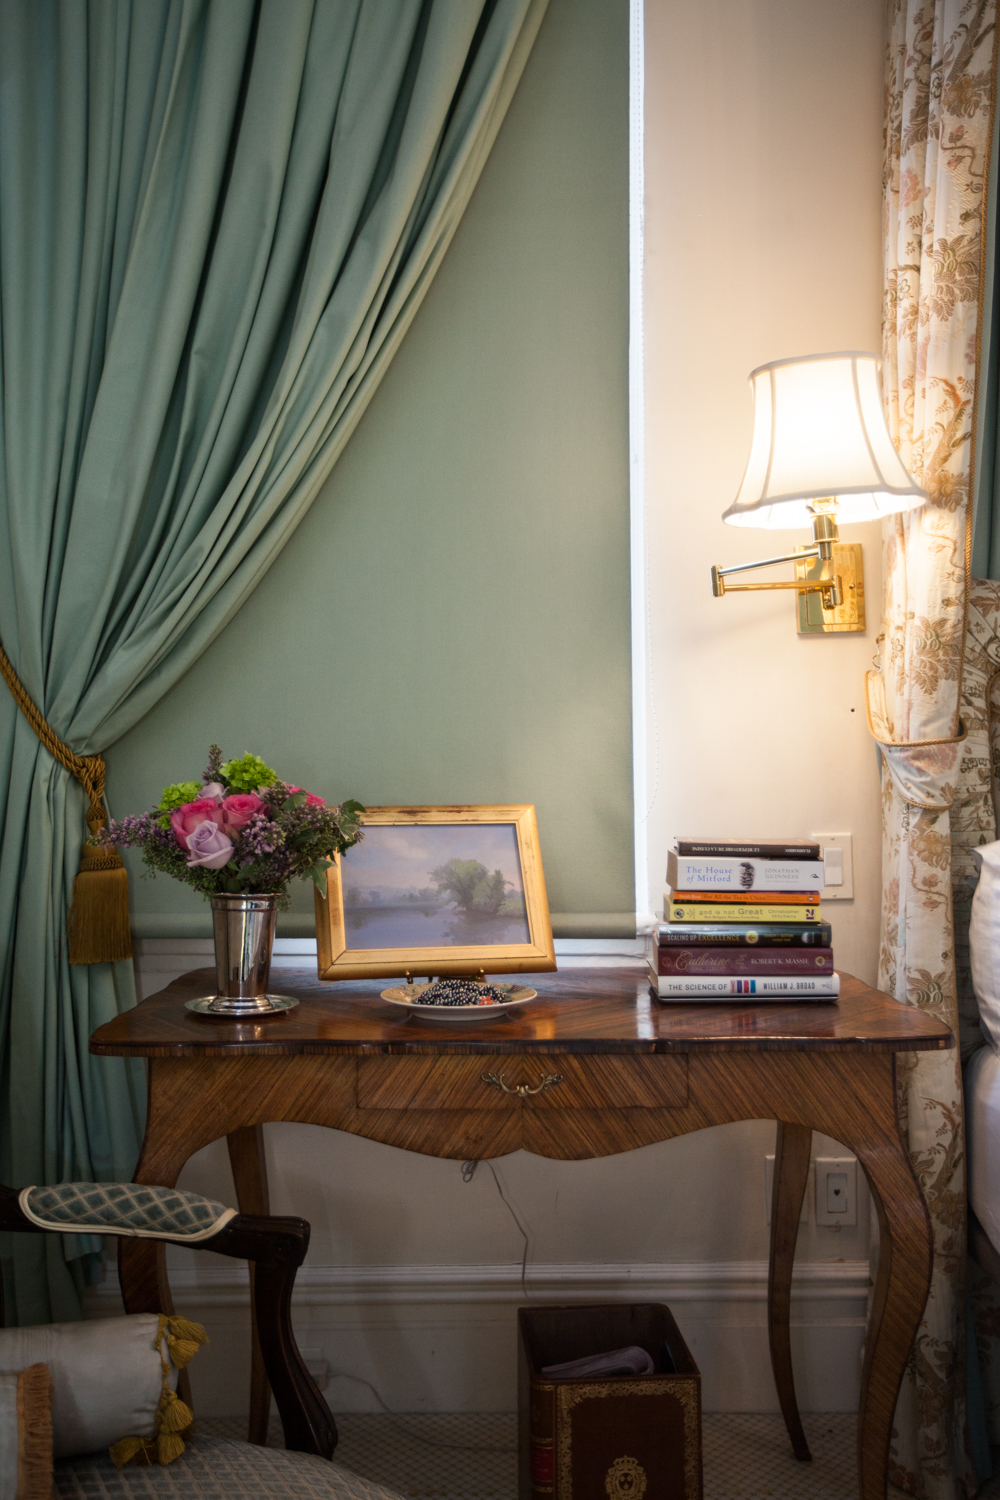 A Pamela Talese painting sits in the bedroom (Photo: Emily Assiran/New York Observer).